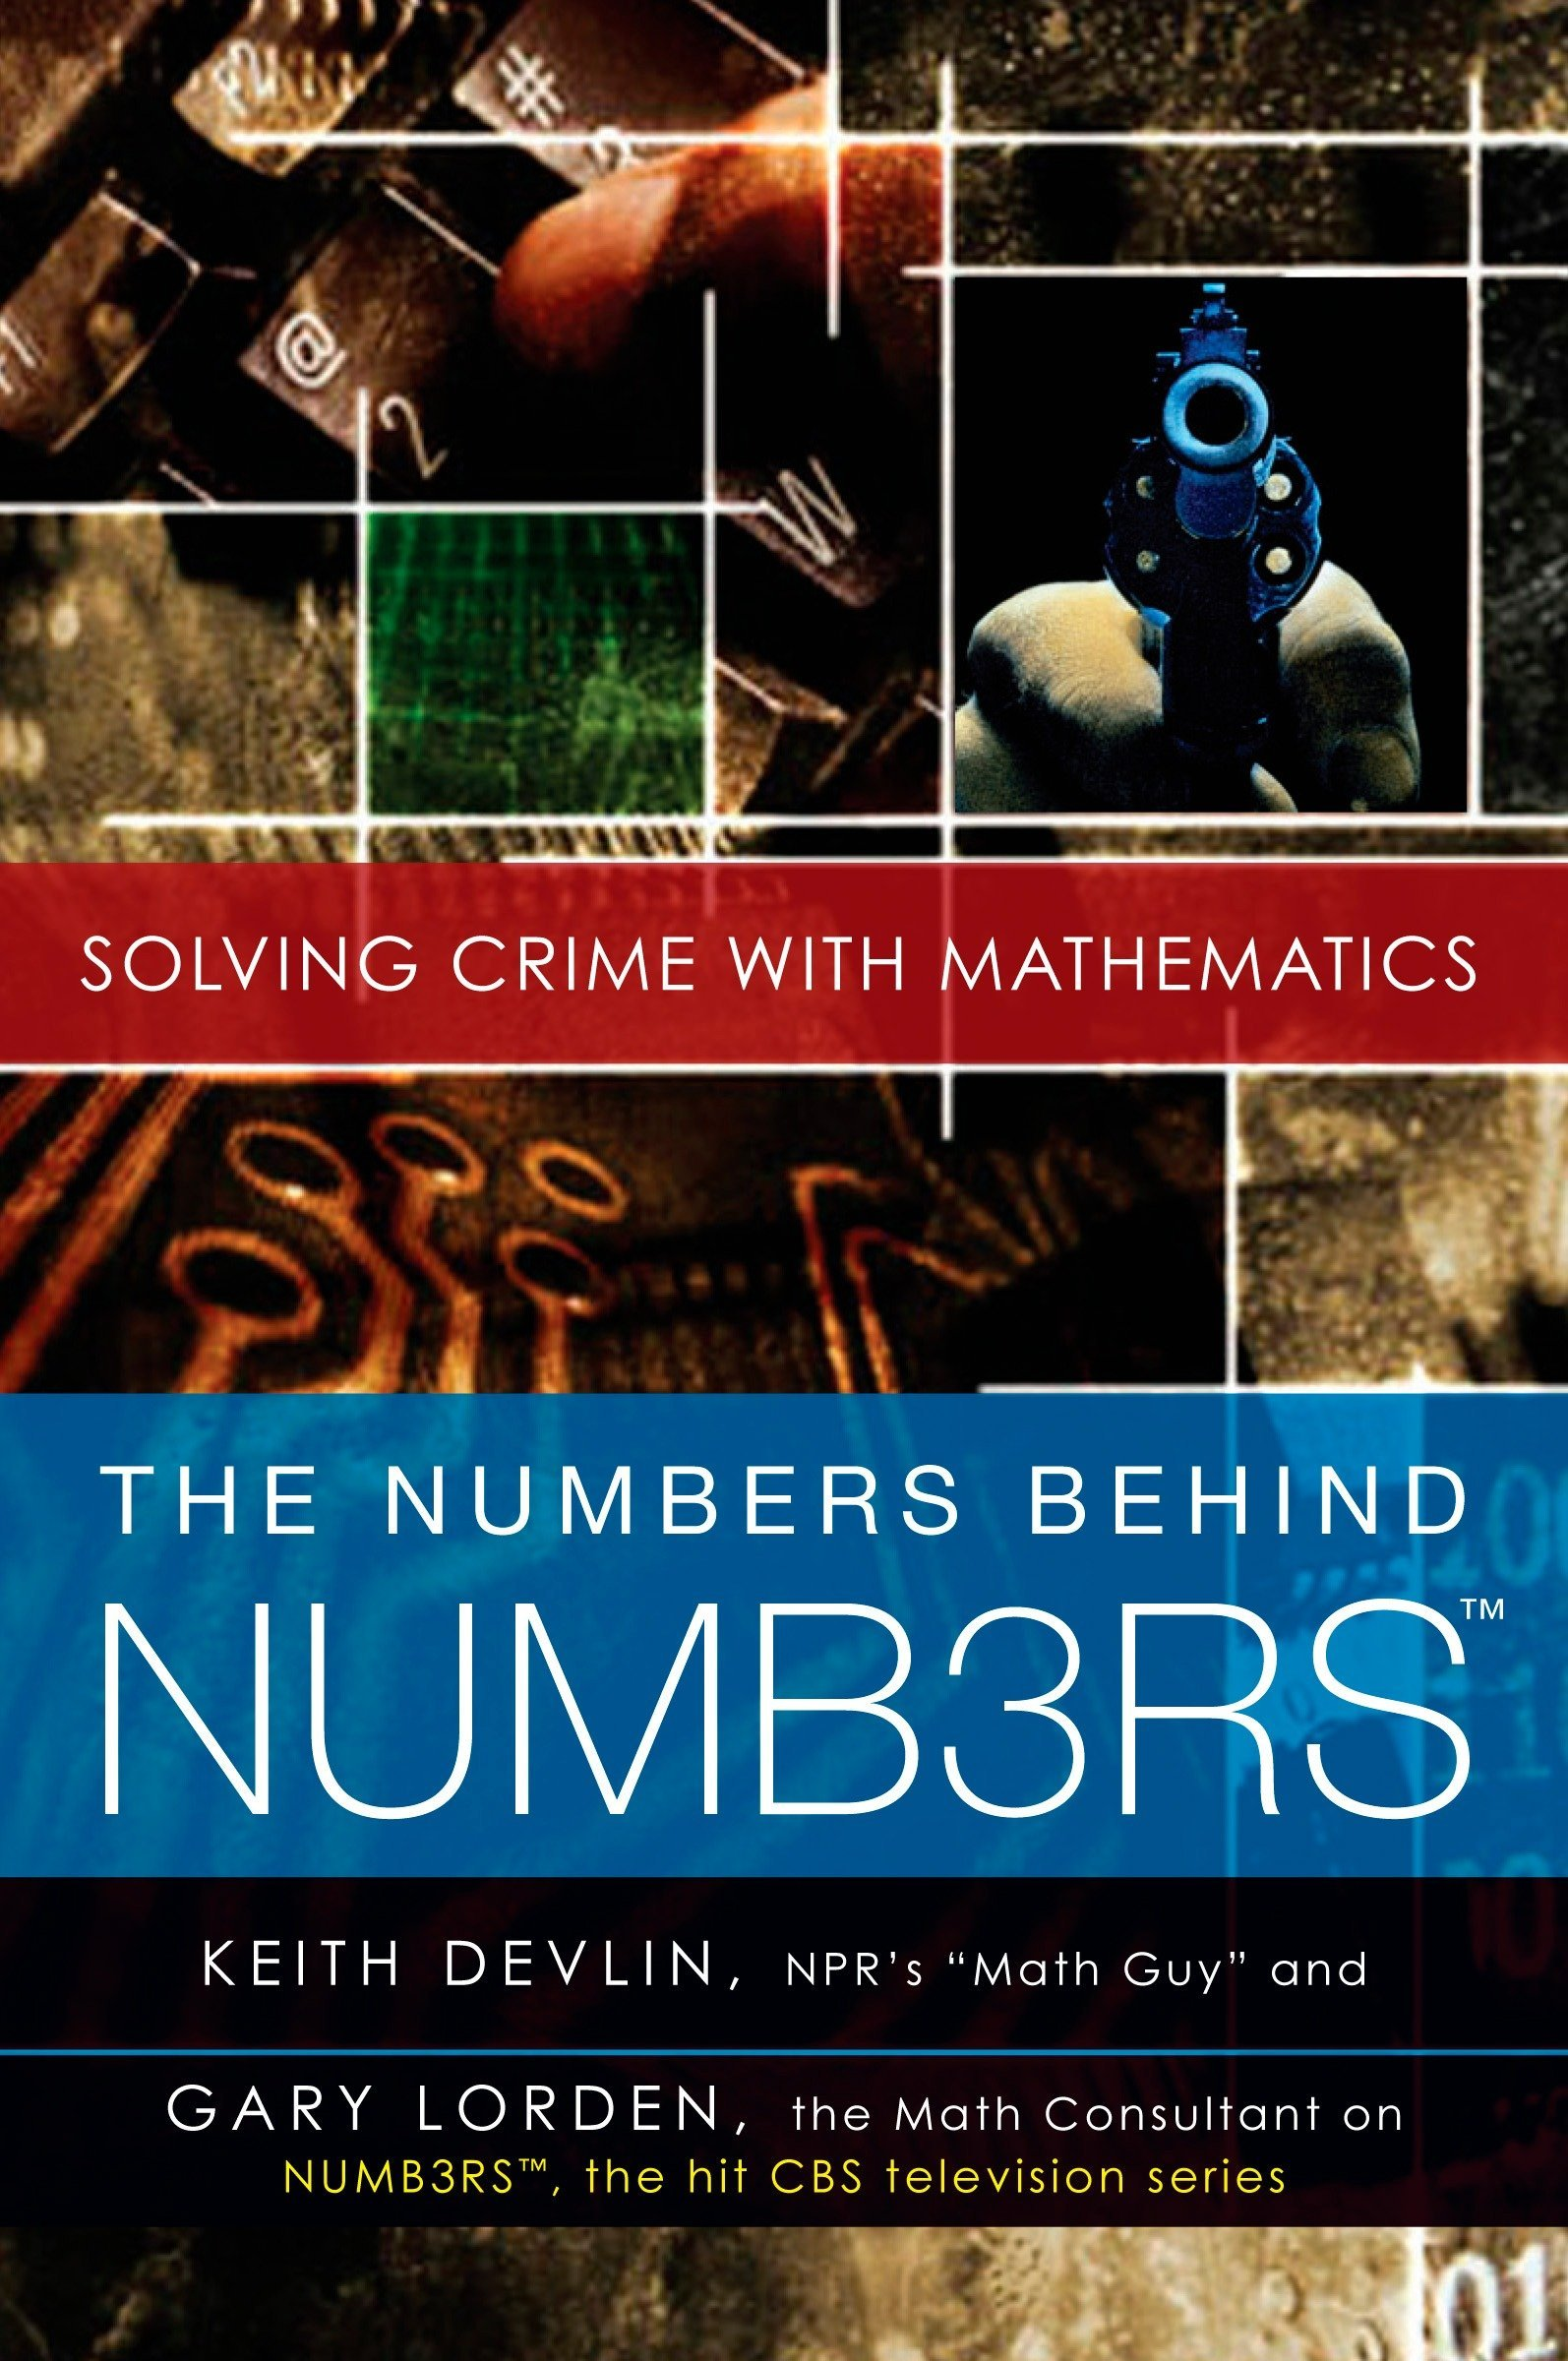 The Numbers Behind Numb3rs Solving Crime With Mathematics Keith